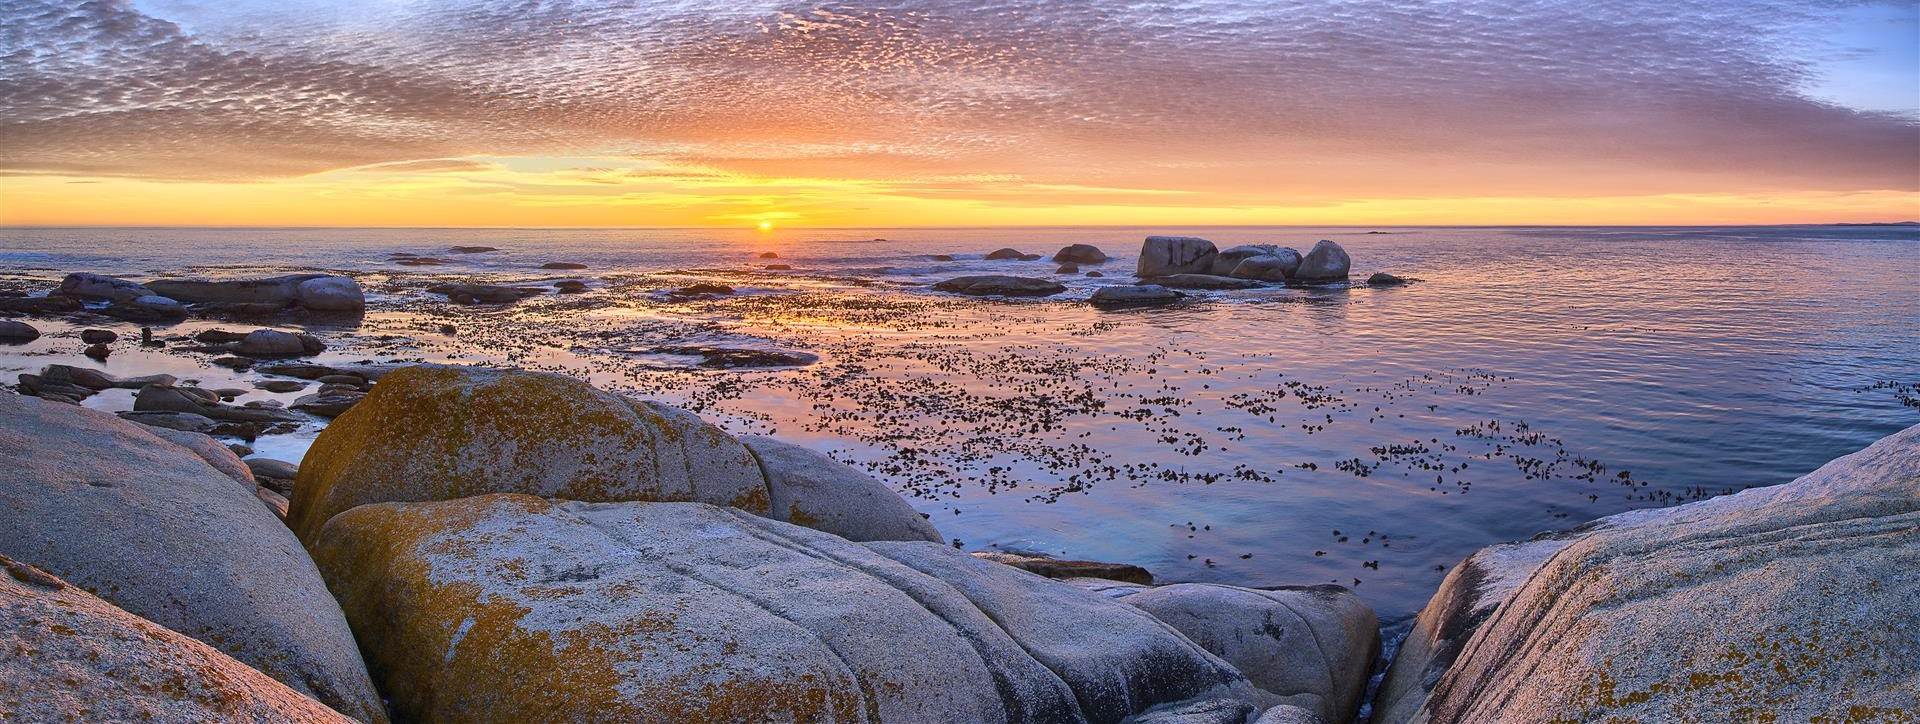 sunset-image-taken-at-camps-bay-beach-with-rocks-south-africa